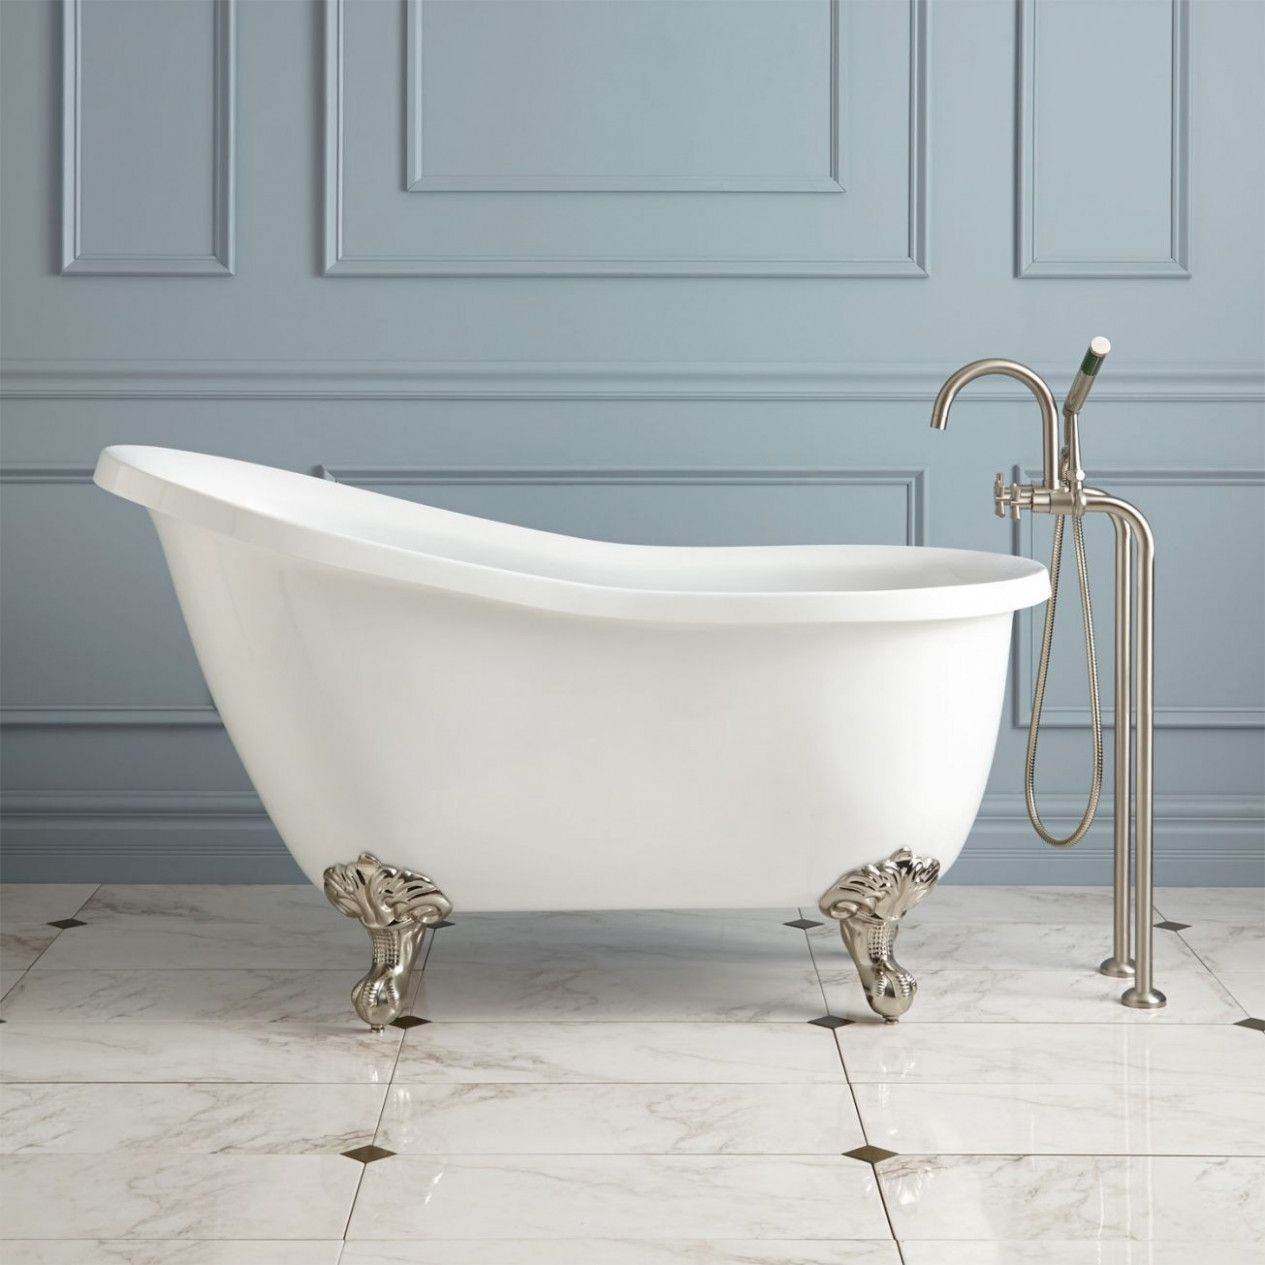 You Will Never Believe These Bizarre Truths Behind Bathtub Decor ...